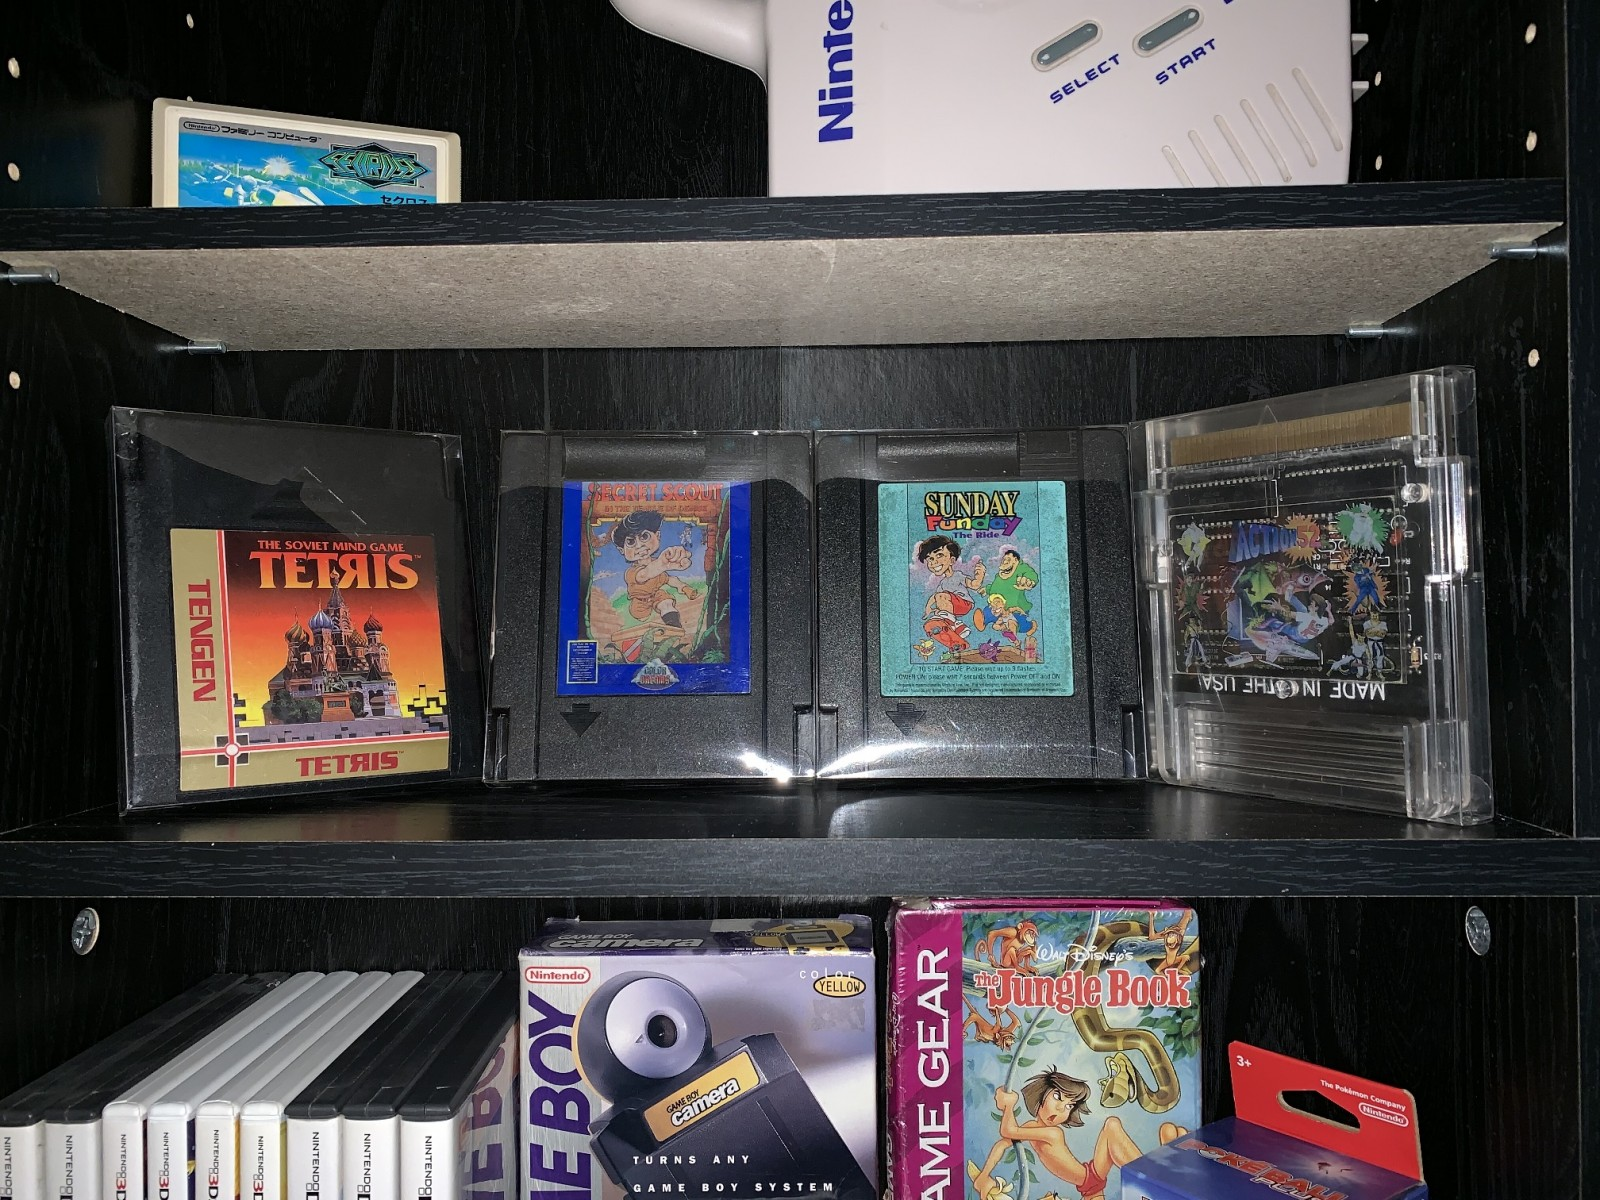 Some of my Unlicensed NES Games